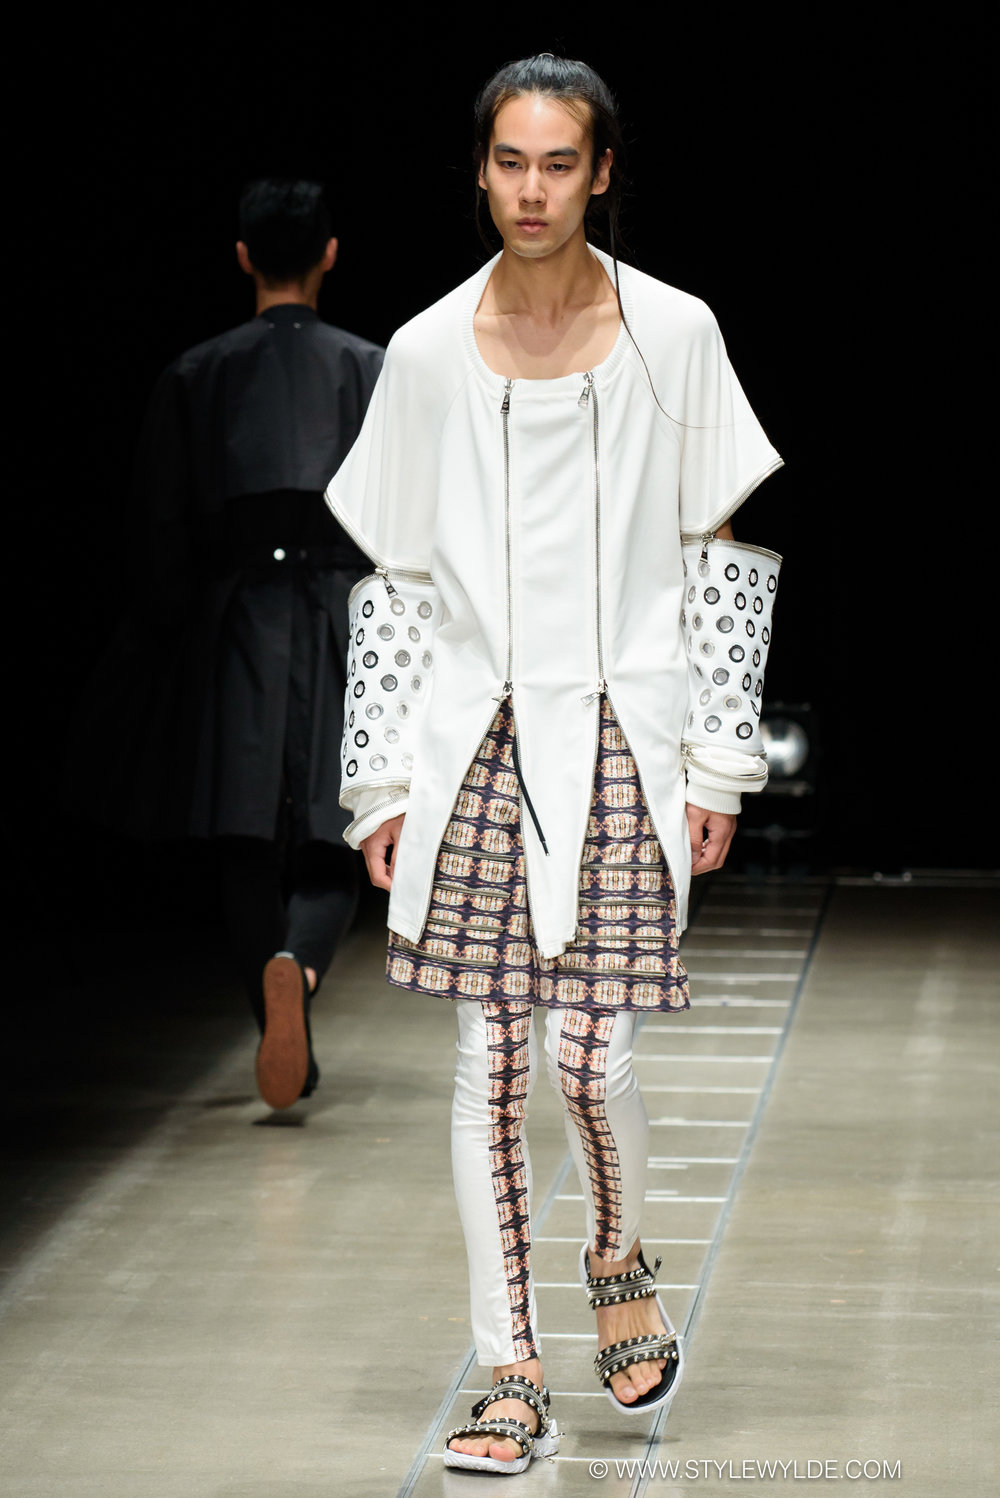 stylewylde_acuod_by_chanu_SS18_runway-9.jpg